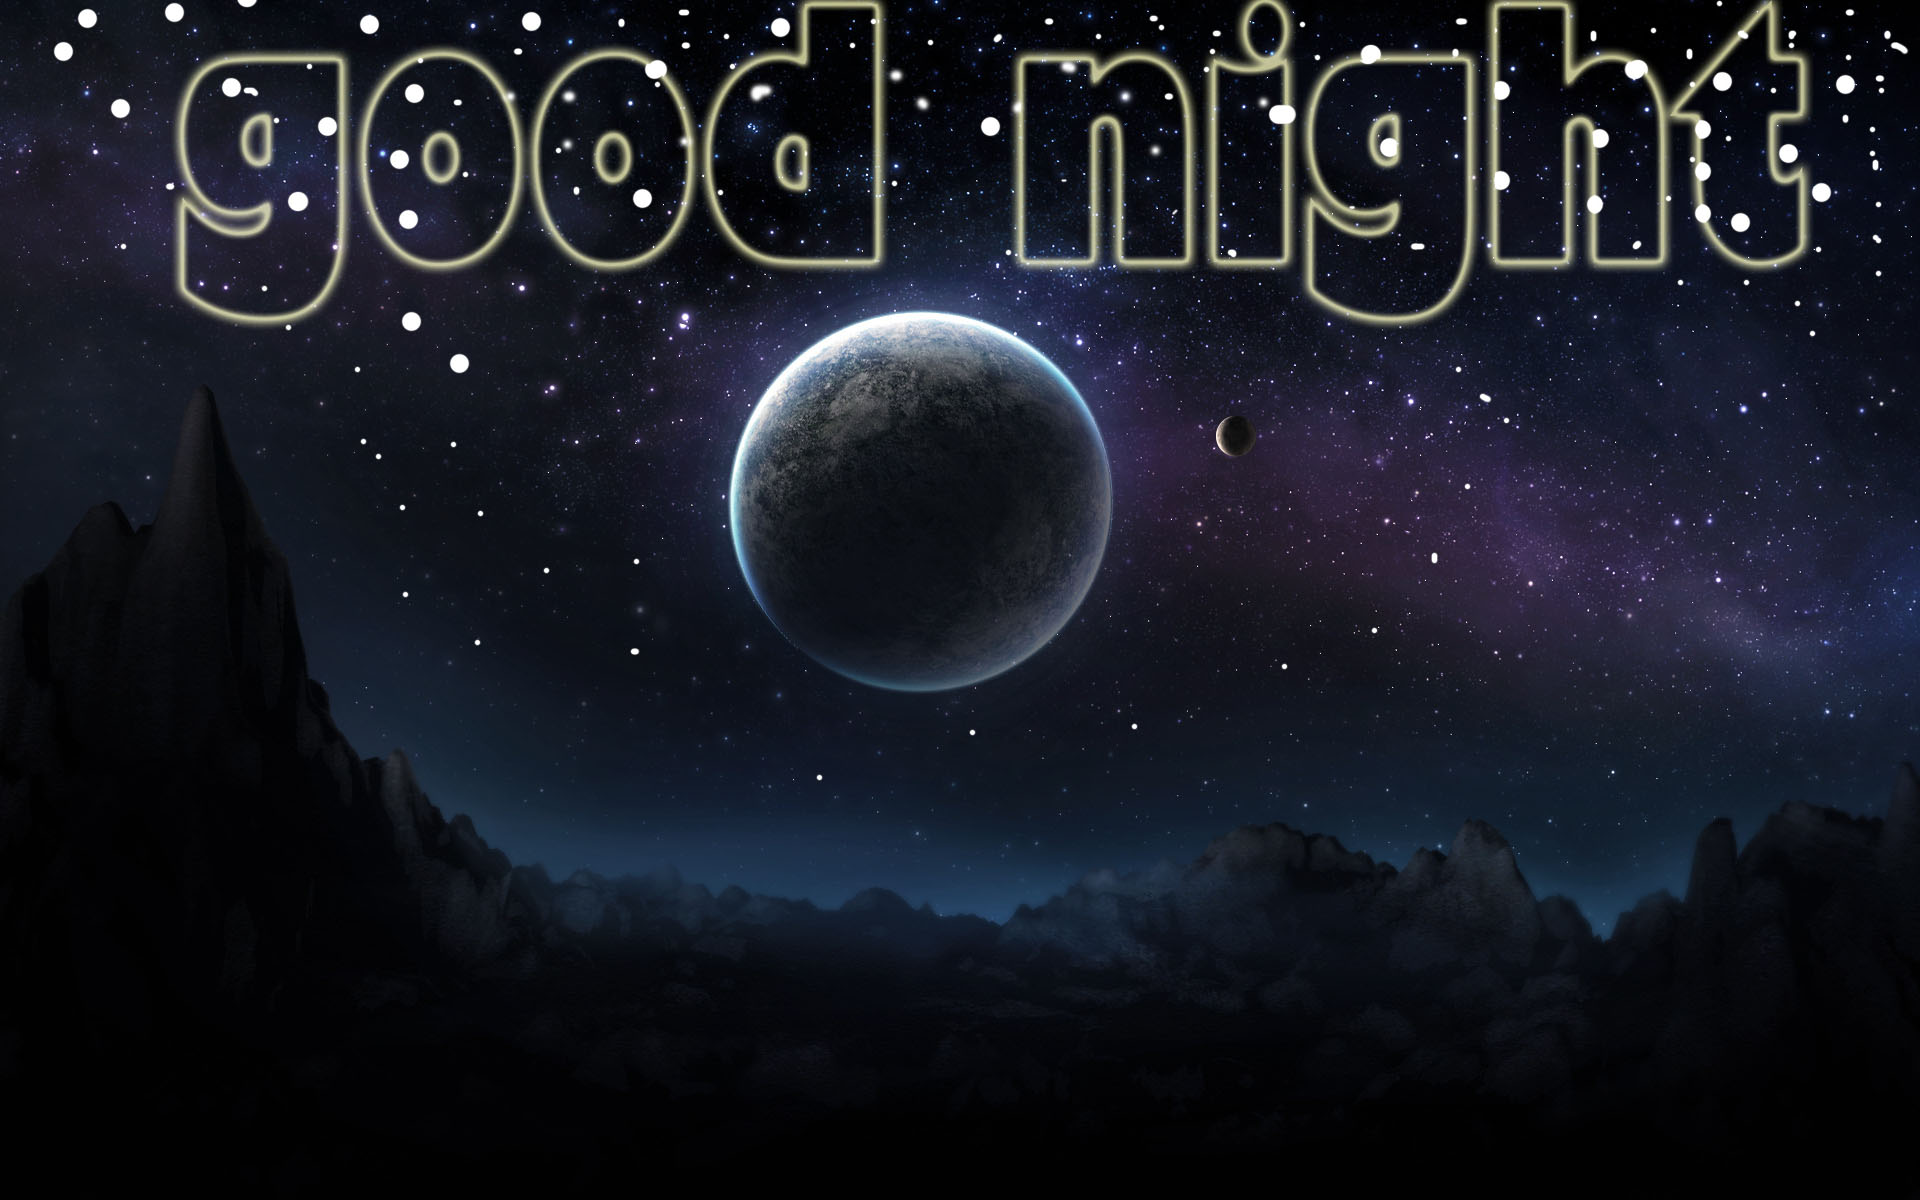 good night images hd dowload free